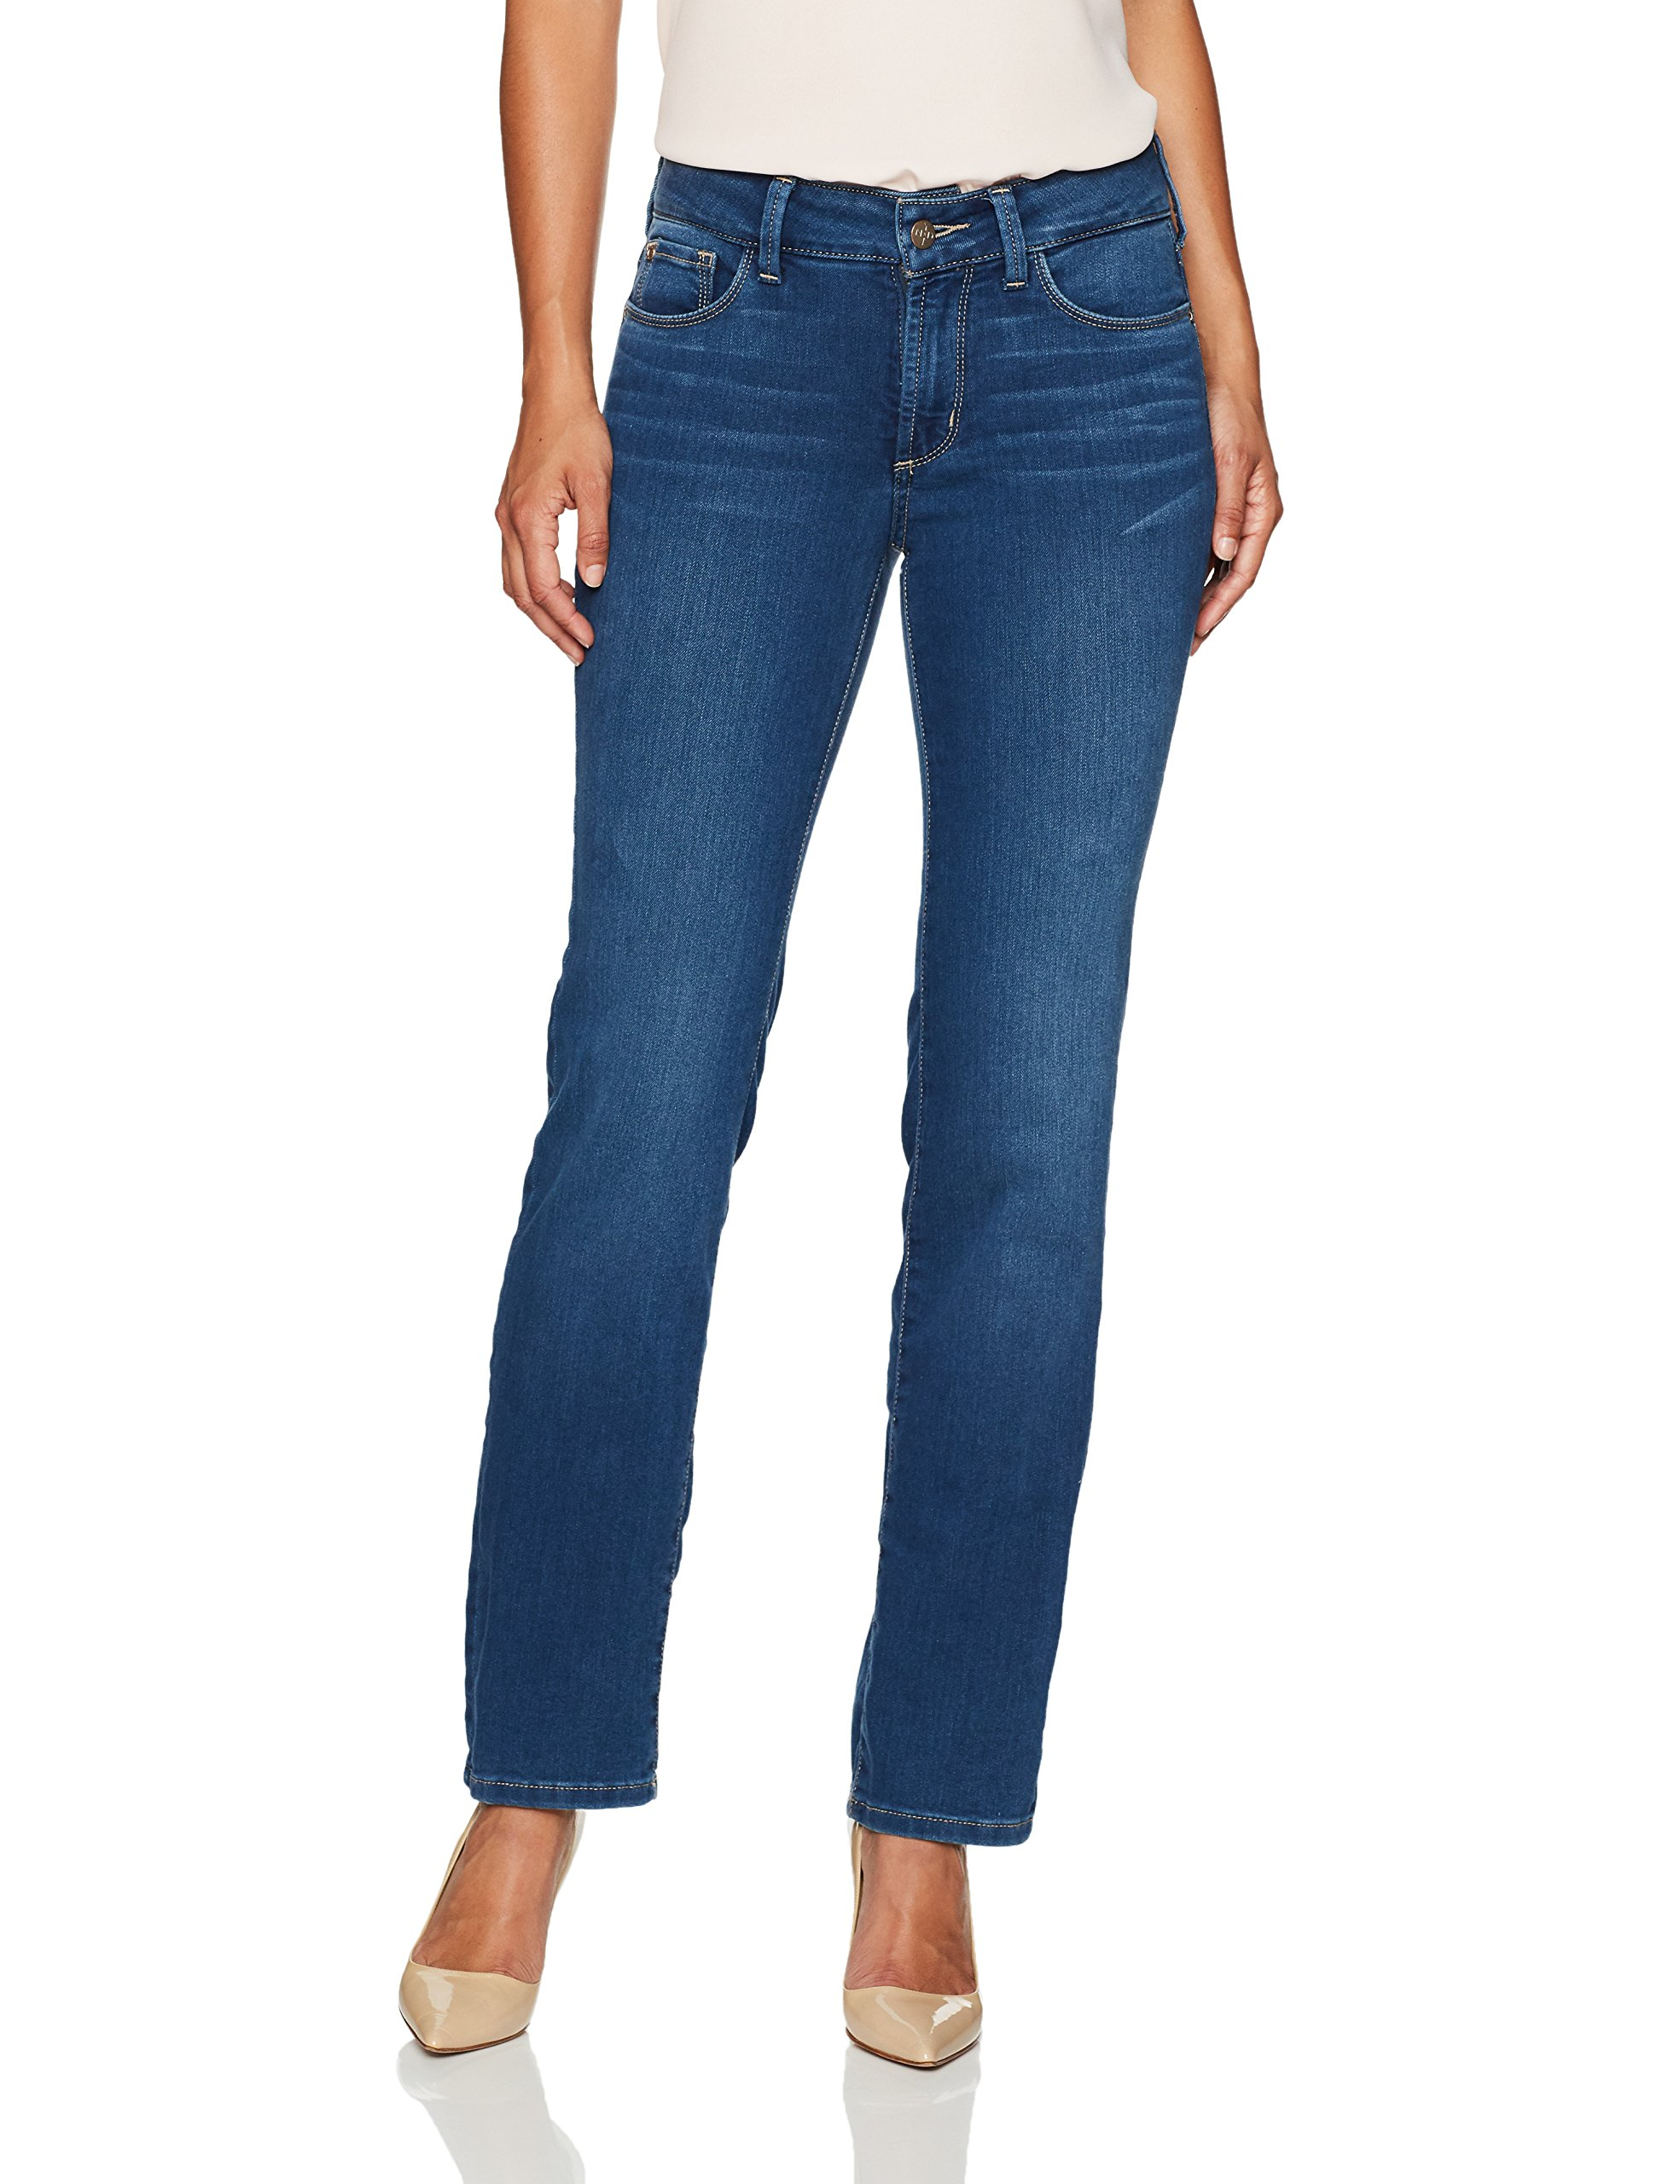 NYDJ Women's Petite Size Marilyn Straight Leg Jeans In Future Fit Denim, Islander, 8P